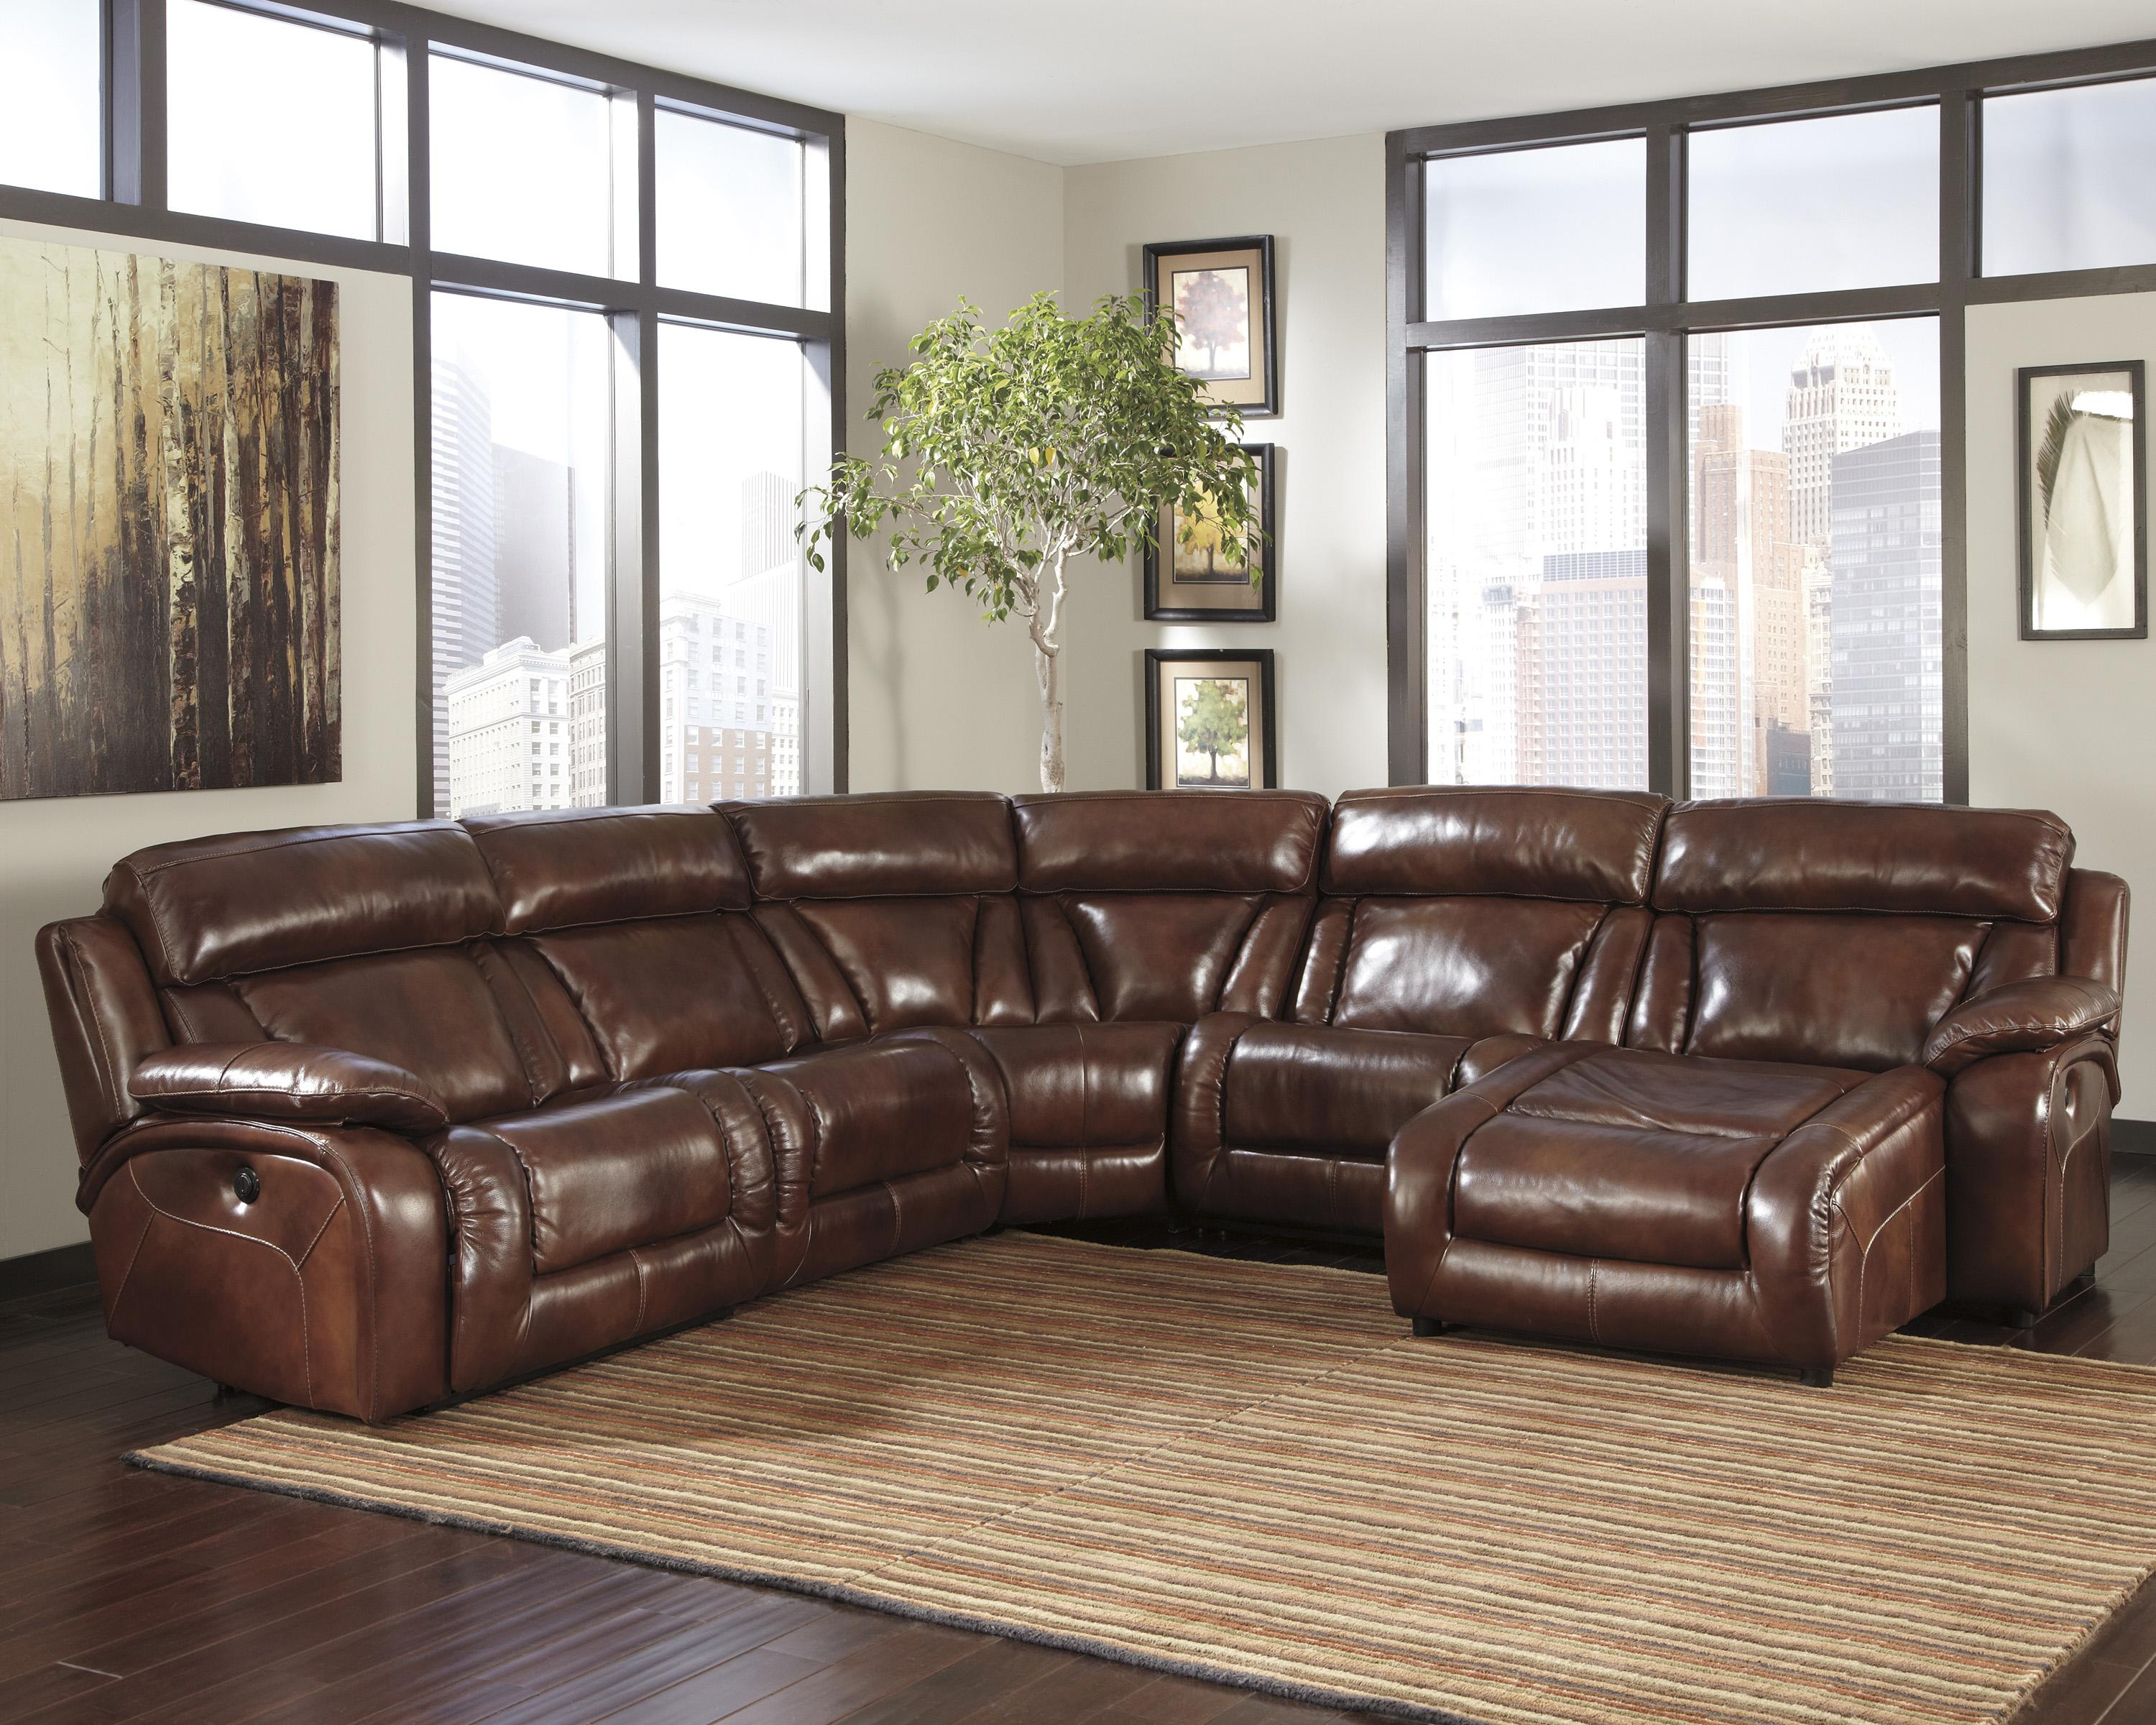 Signature Design by Ashley Elemen Contemporary Reclining Sectional Sofa - Item Number: U9920158+57+2x19+77+97